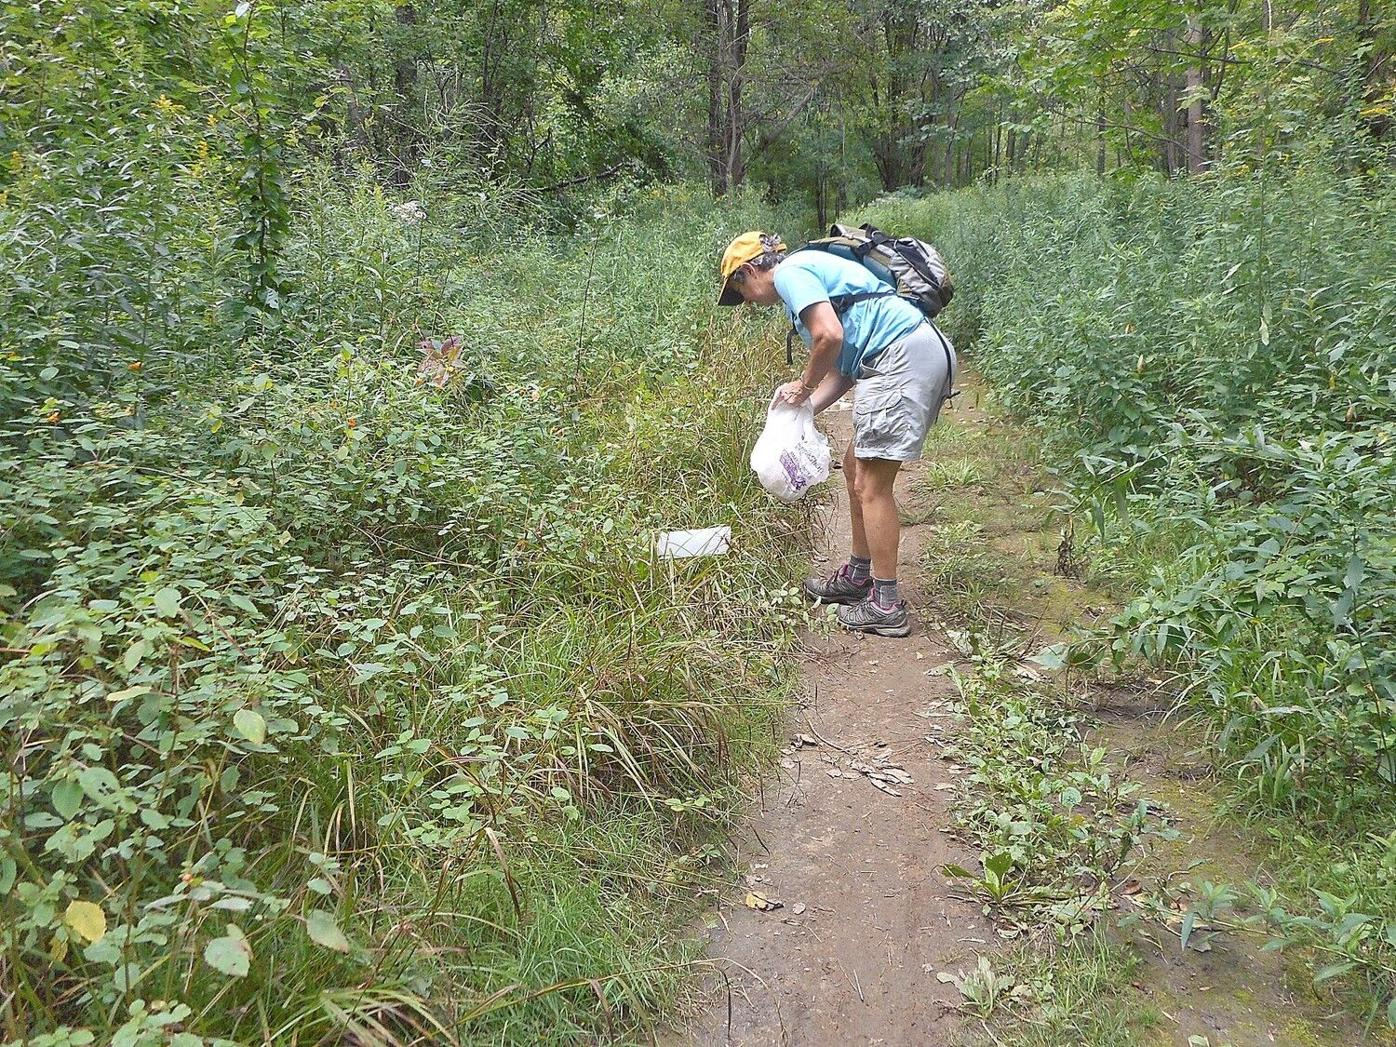 Lauren R. Stevens | Hikes and Walks: Greylock Glen readying new trails to welcome hikers and more